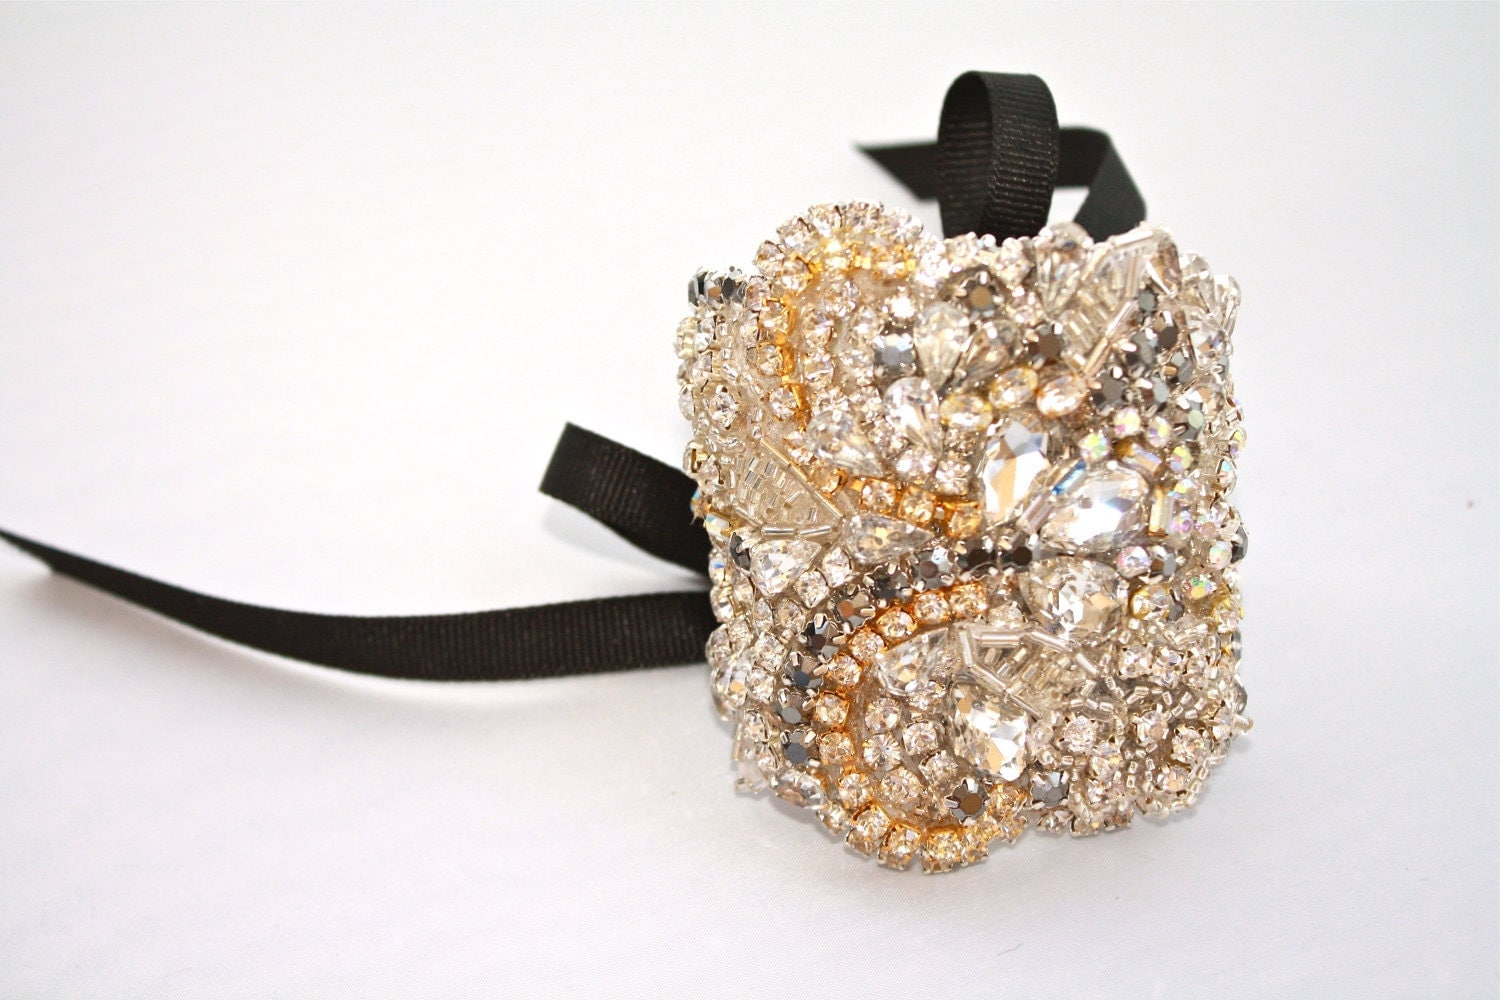 Made to Order Standard Clear Crystal Statement Cuff With Custom Ribbon Tie